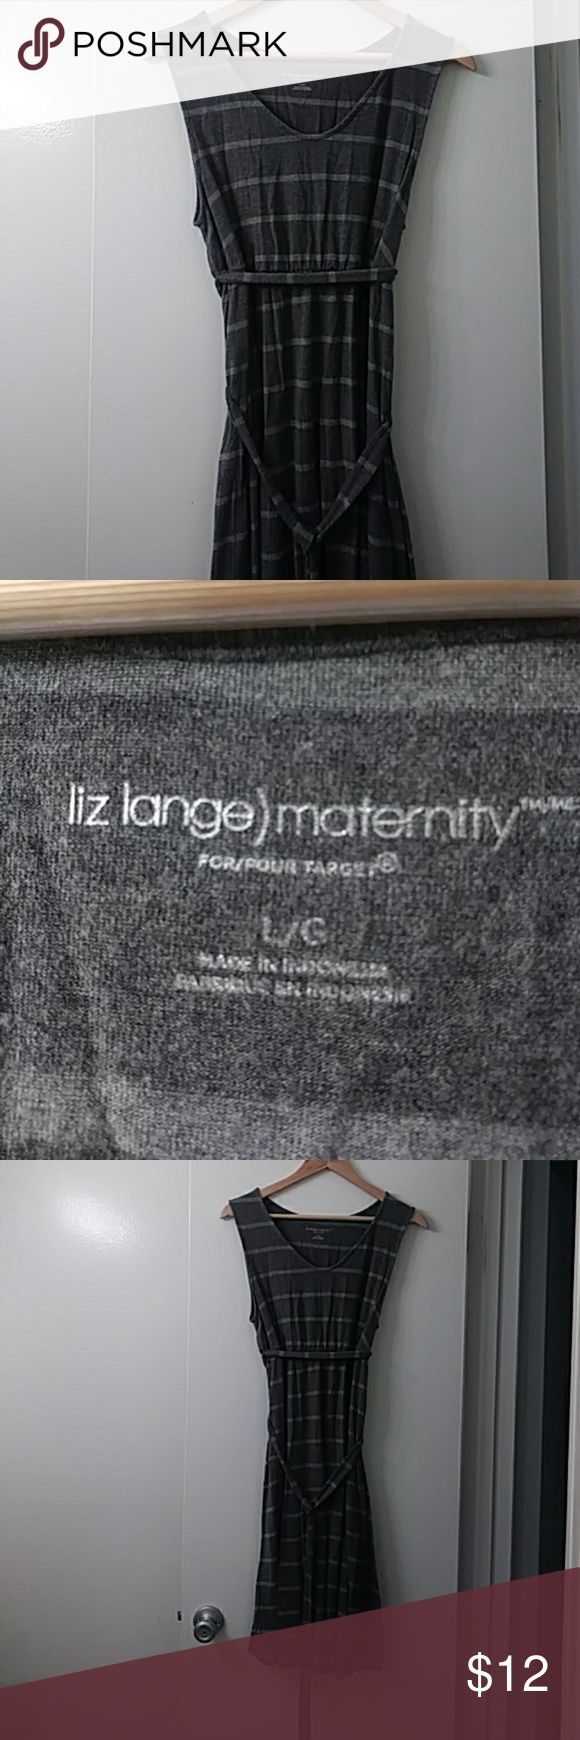 2 tone grey striped maternity dress. Super soft Liz Lange for Target maternity dress. Stripped with dark and light gray. So soft and comfortable! Has been in the dryer but still looks pretty good Liz Lange for Target Dresses Midi